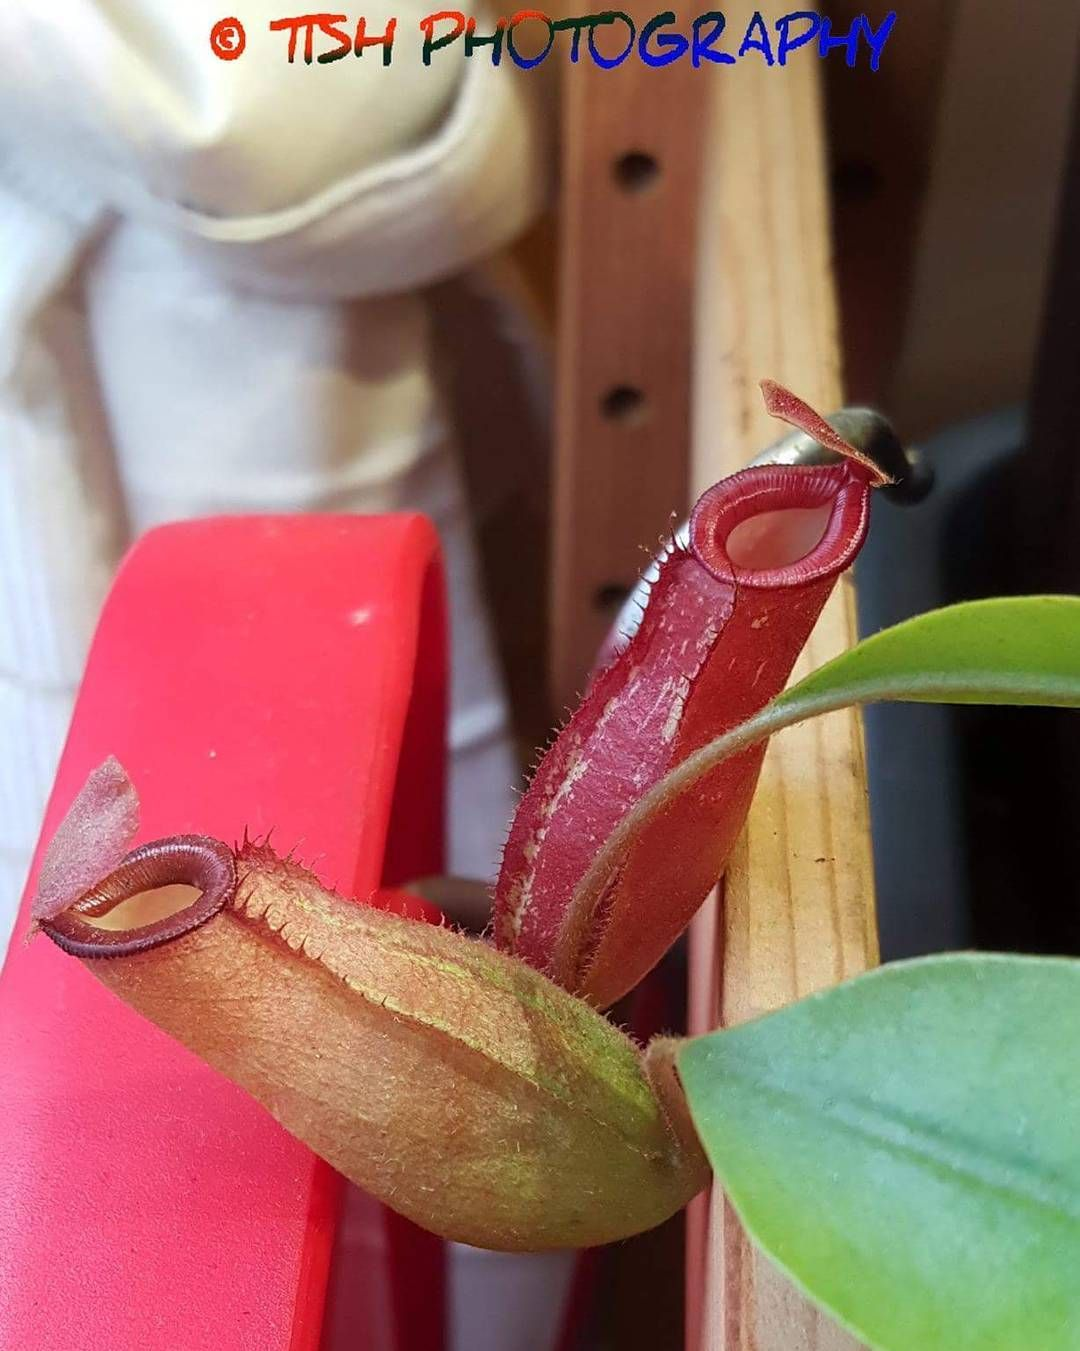 nepenthes lady luck ampullaria x ventricosa showing diffrence